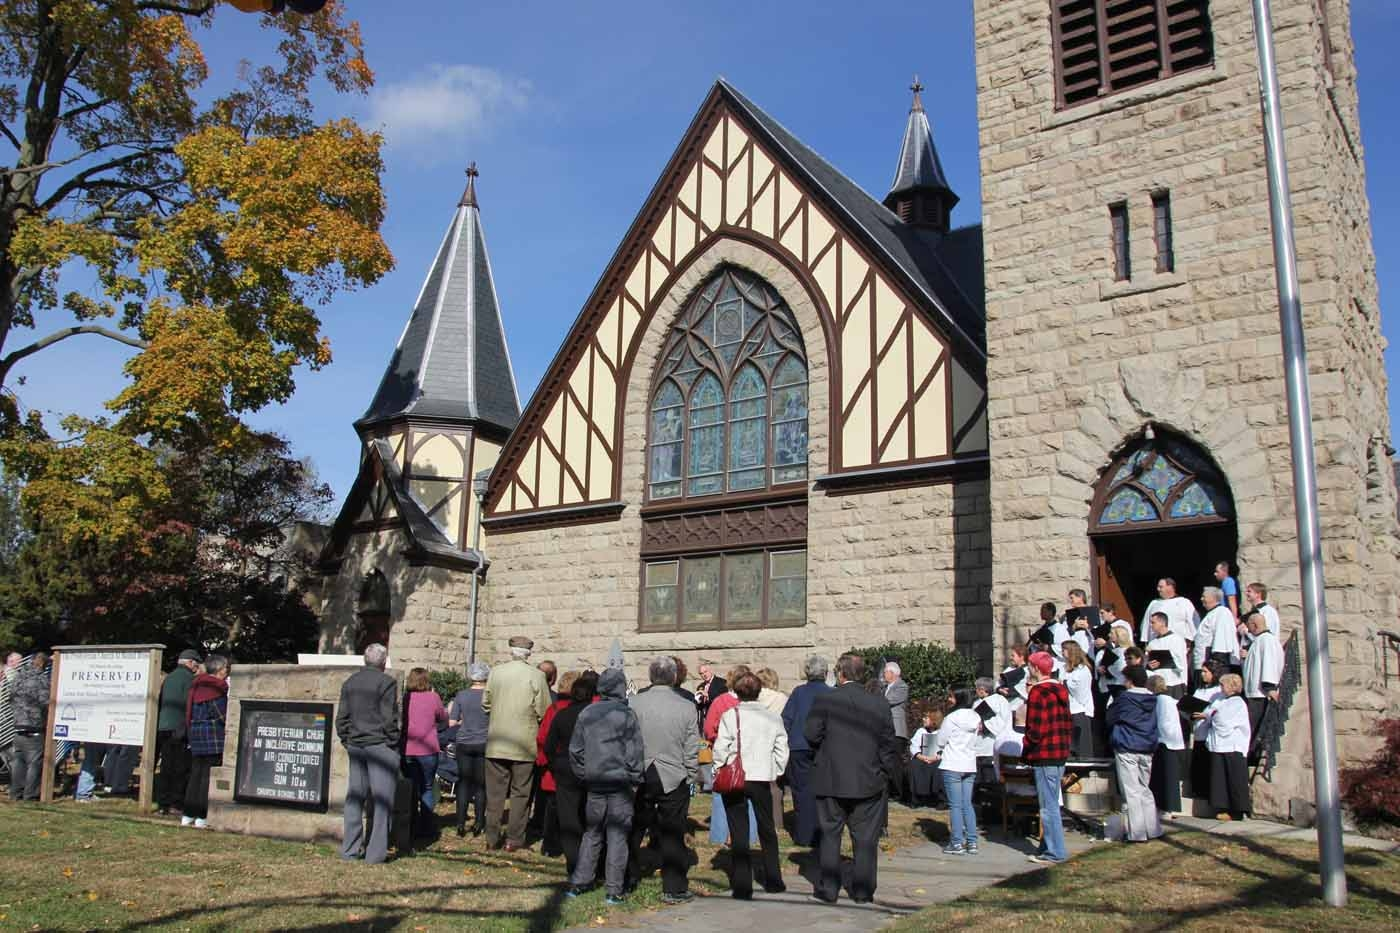 Rededication of the Church